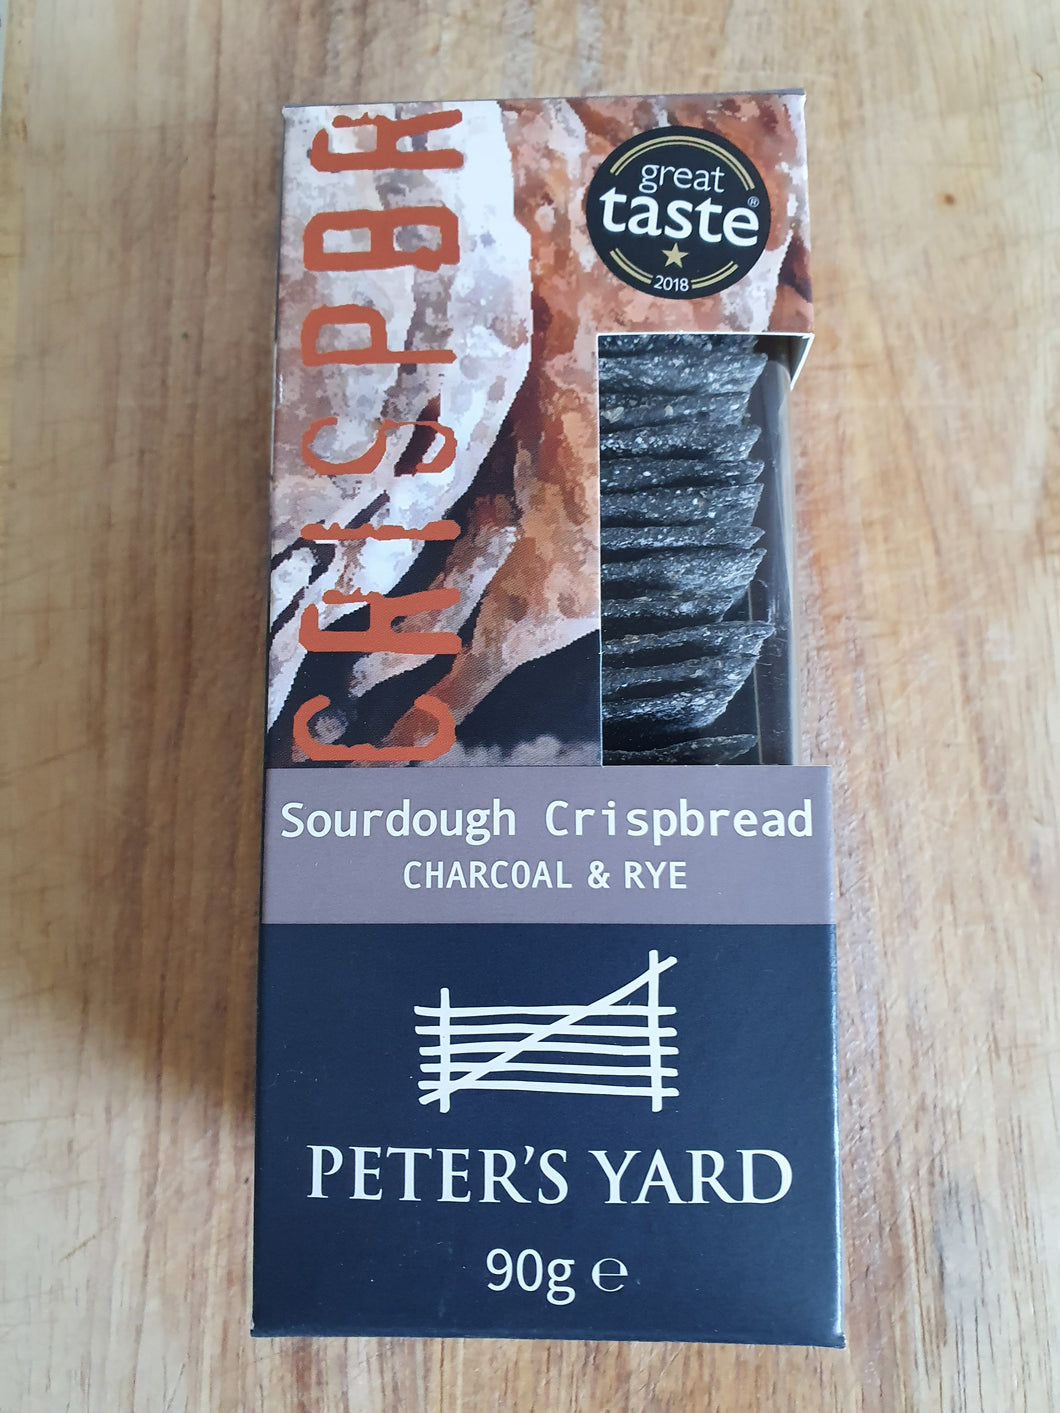 Charcoal and rye crispbreads - 90g